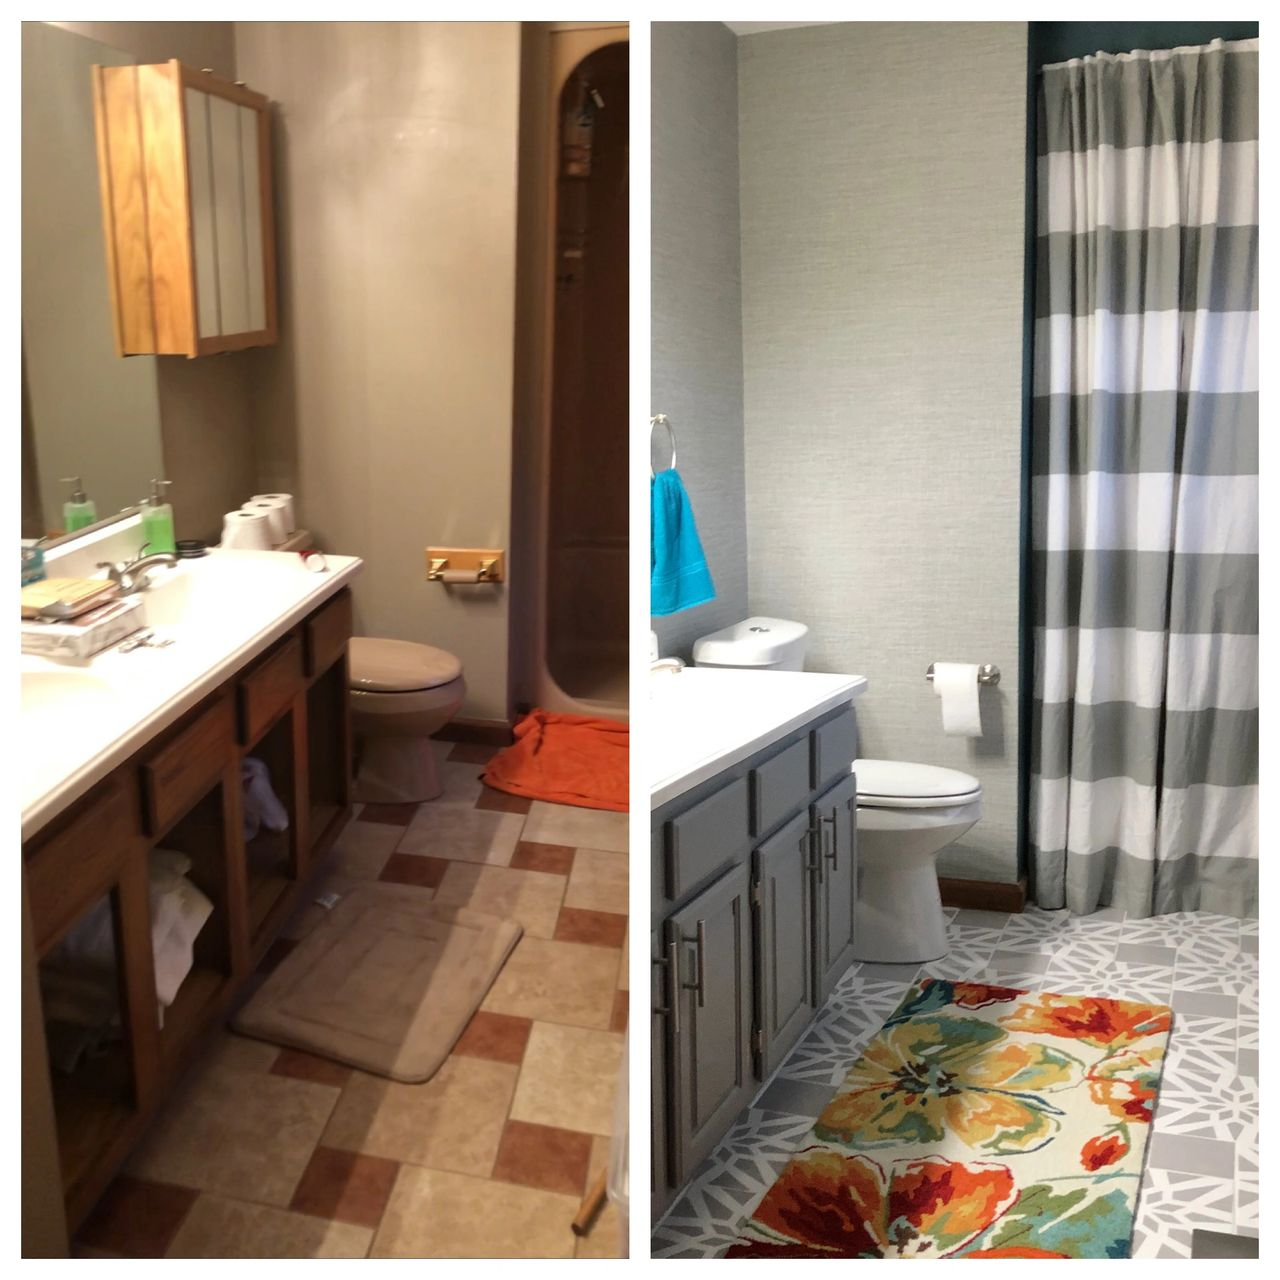 Before and After - The brown bathroom pic was from the week we moved in